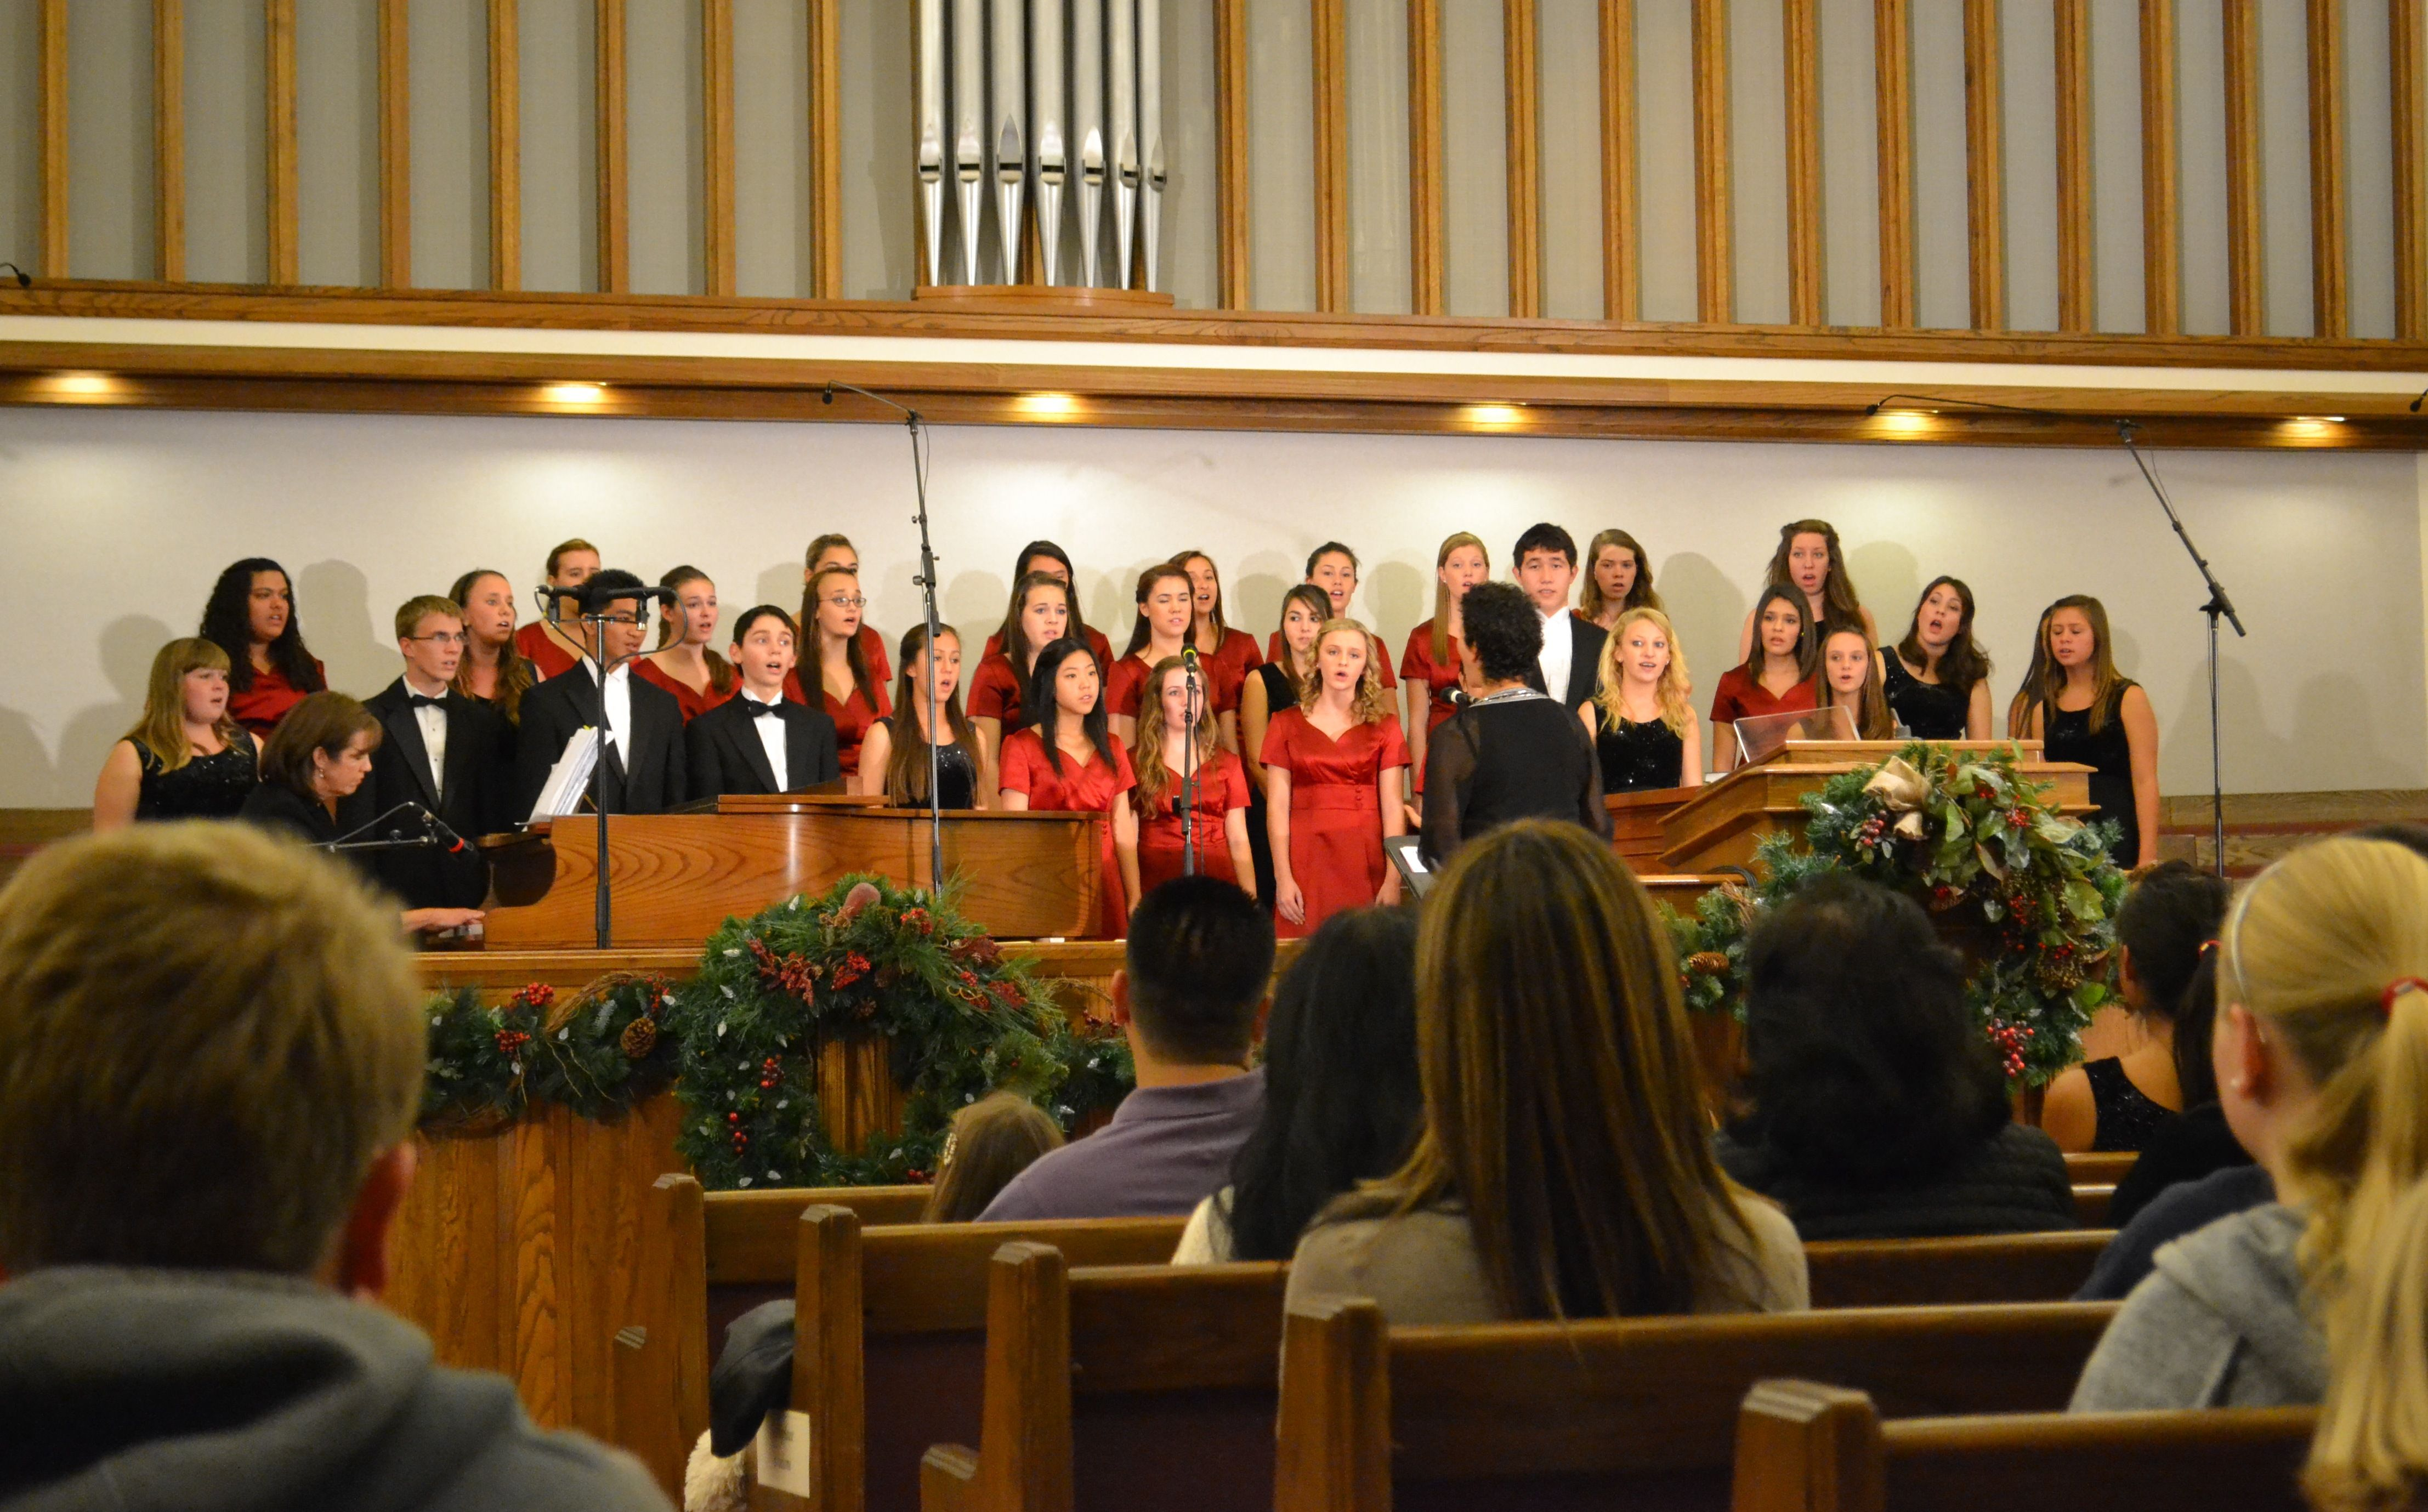 Most of the local middle and high school vocal ensembles perform during the nativity show.  The stake children's choir performs every year as well.